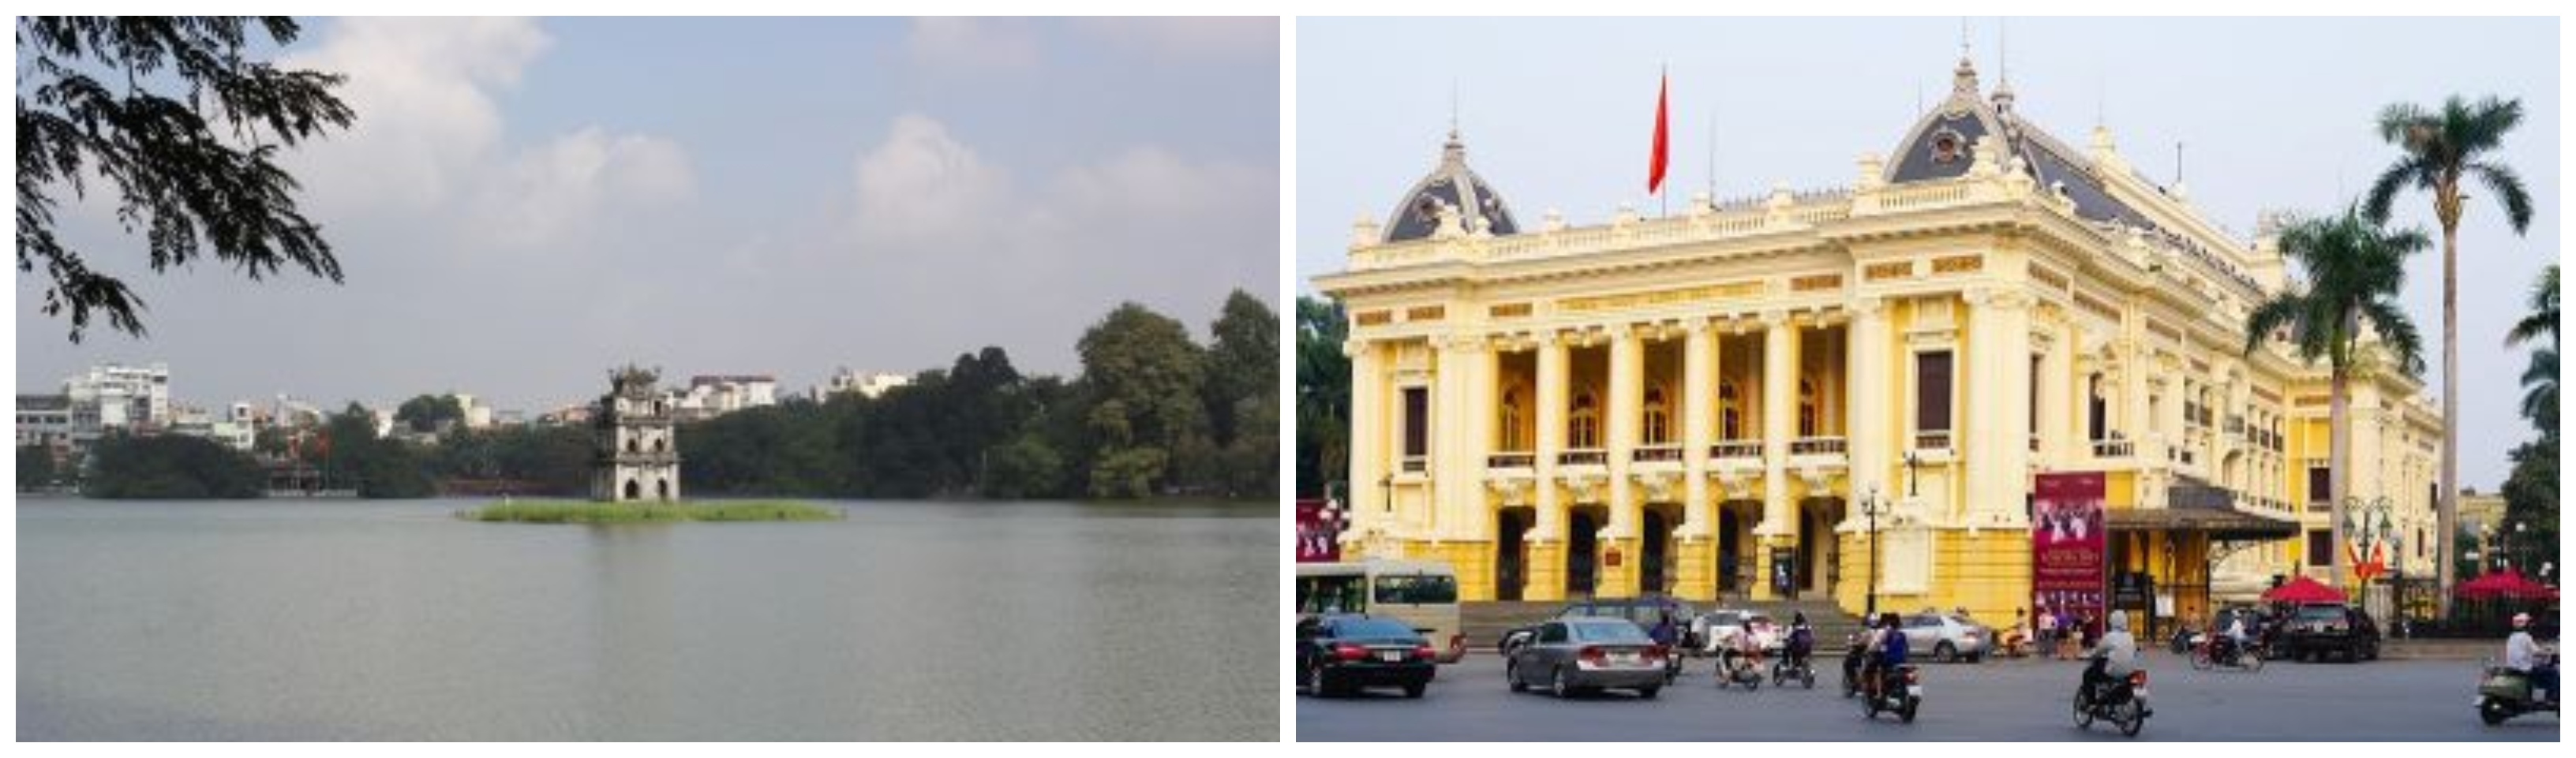 Hoan Kiem Lake (left) and Hanoi Opera House (right)